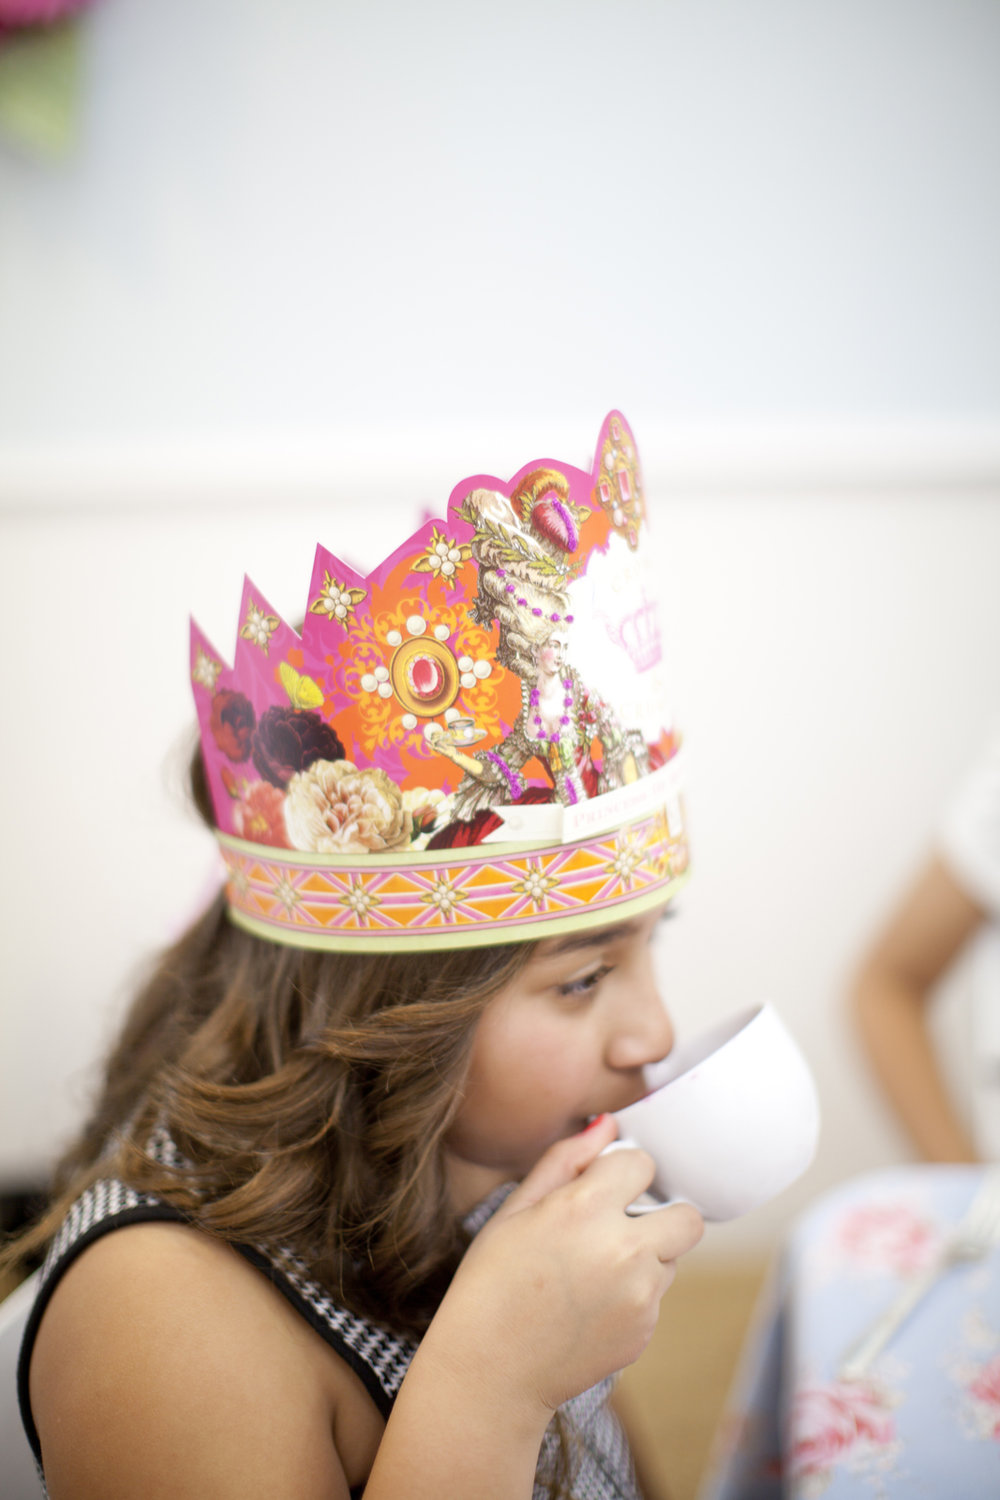 sophia_tea_party_crown_and_crumpet_san_francisco_photography_078.jpg